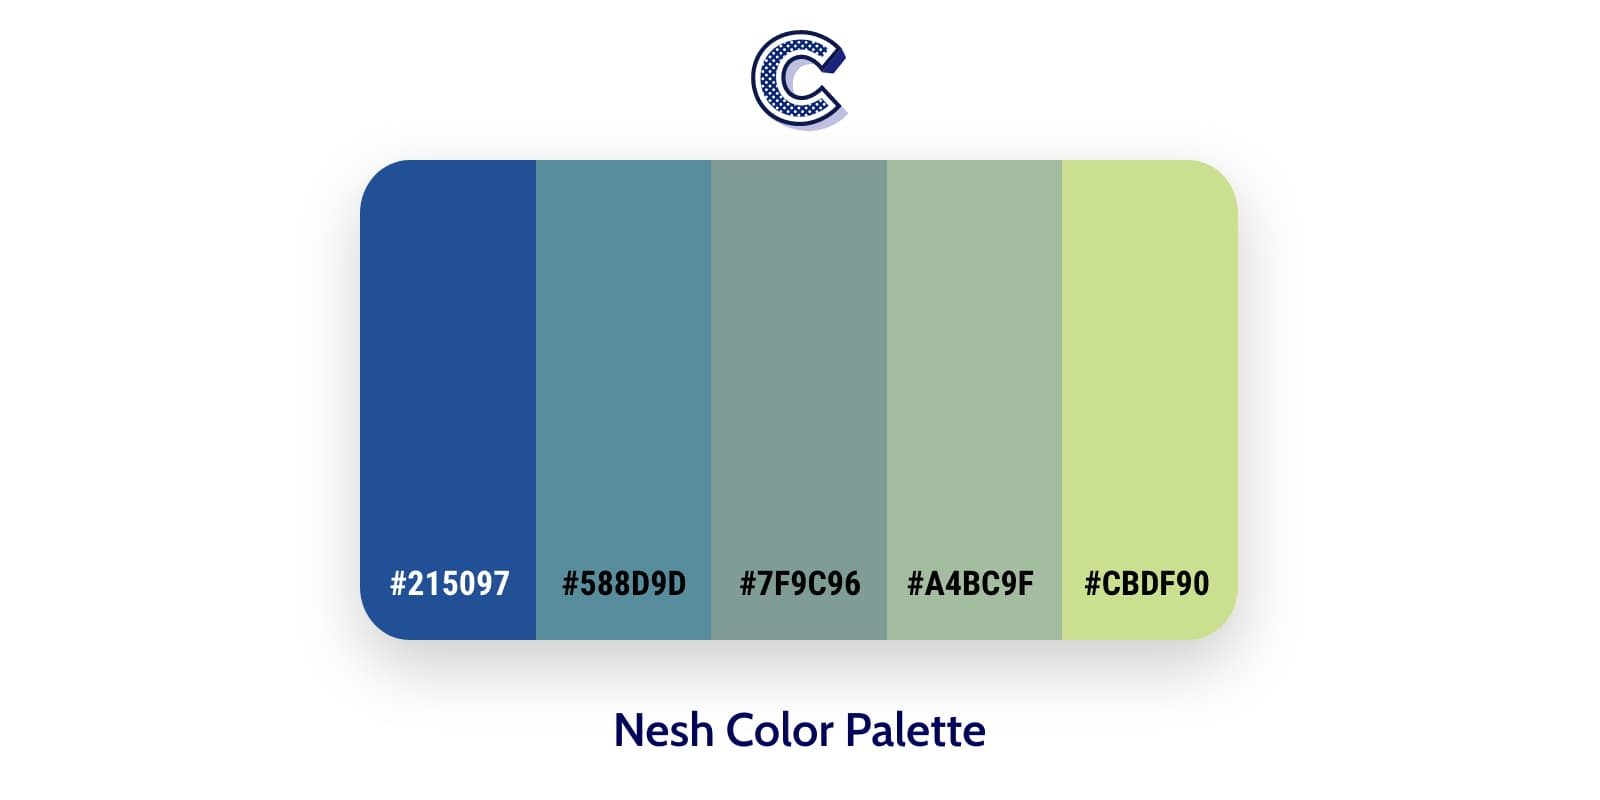 the featured image of nesh color palette